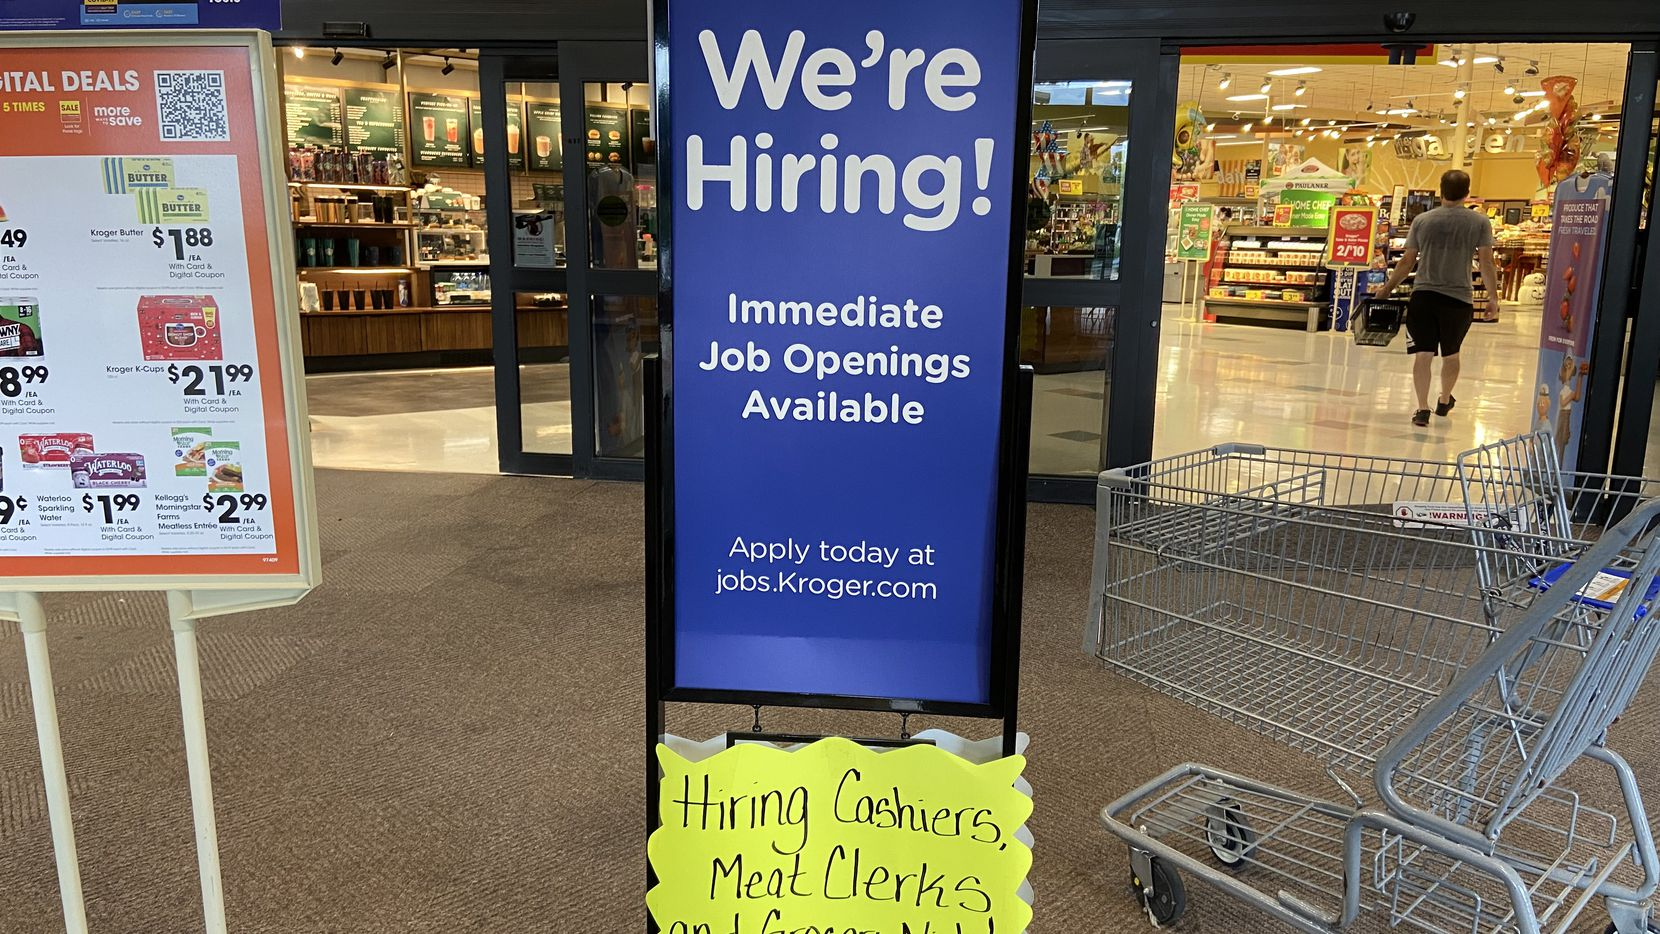 The tight labor market is a concern for retailers who need to staff up for the holidays. Similar signs are posted throughout the Dallas-Fort Worth region. This one is at a Kroger at 9140 Forest Lane in Dallas.